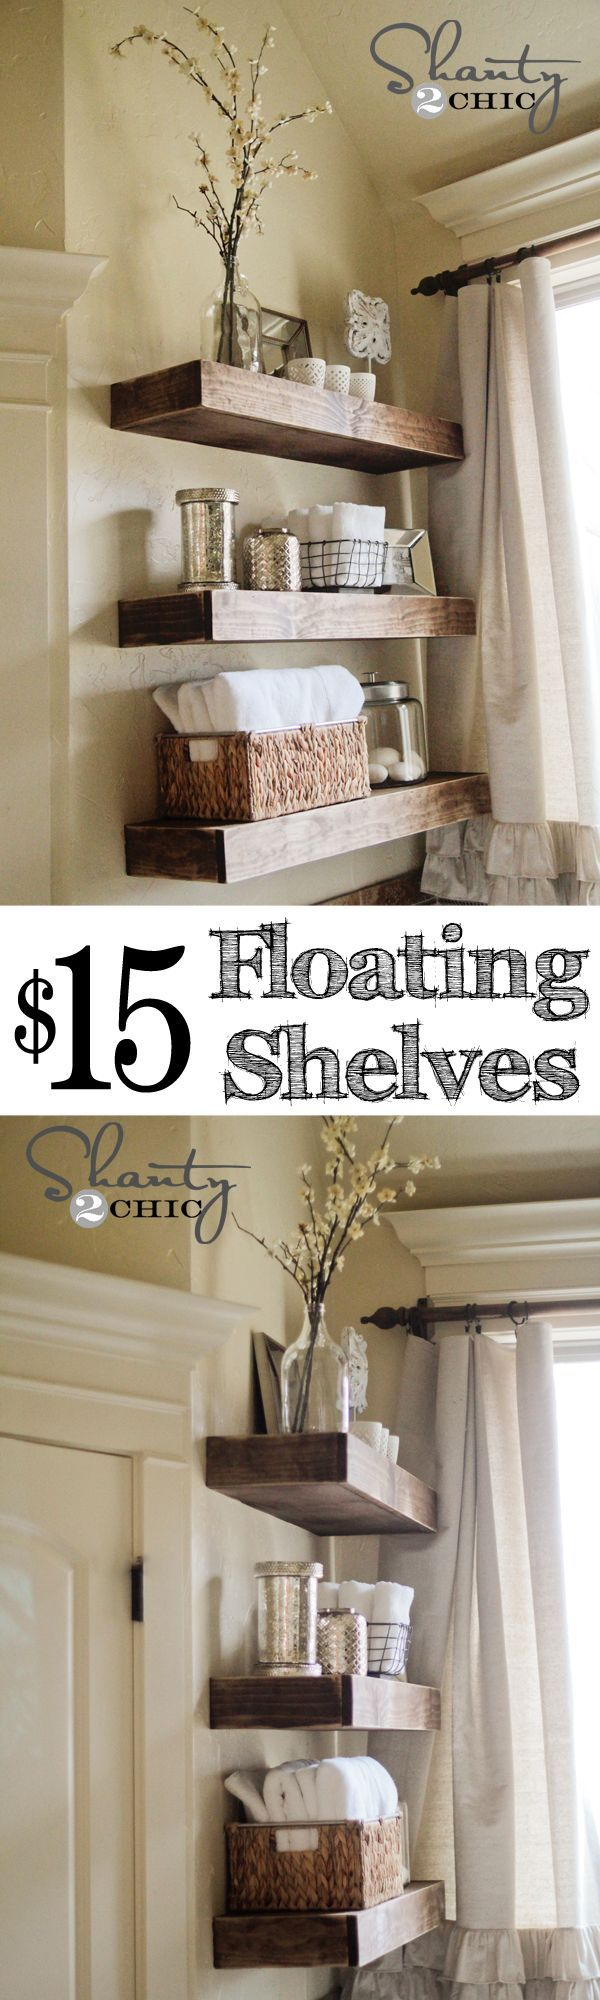 graphic tees online 12 Budget Friendly DIY Remodeling Projects For Your Bathroom